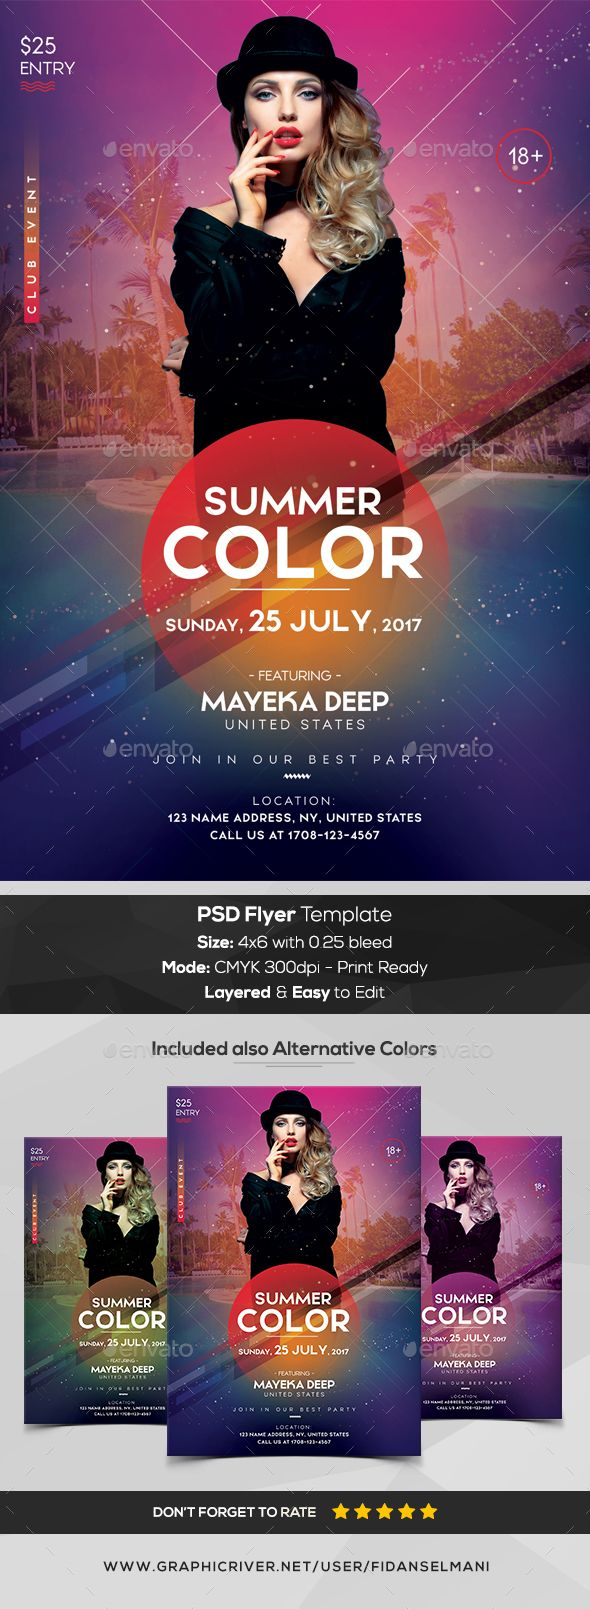 #Summer Color - PSD Flyer Template - #Events #Flyers Download here:  https://graphicriver.net/item/summer-color-psd-flyer-template/20286770?ref=alena994